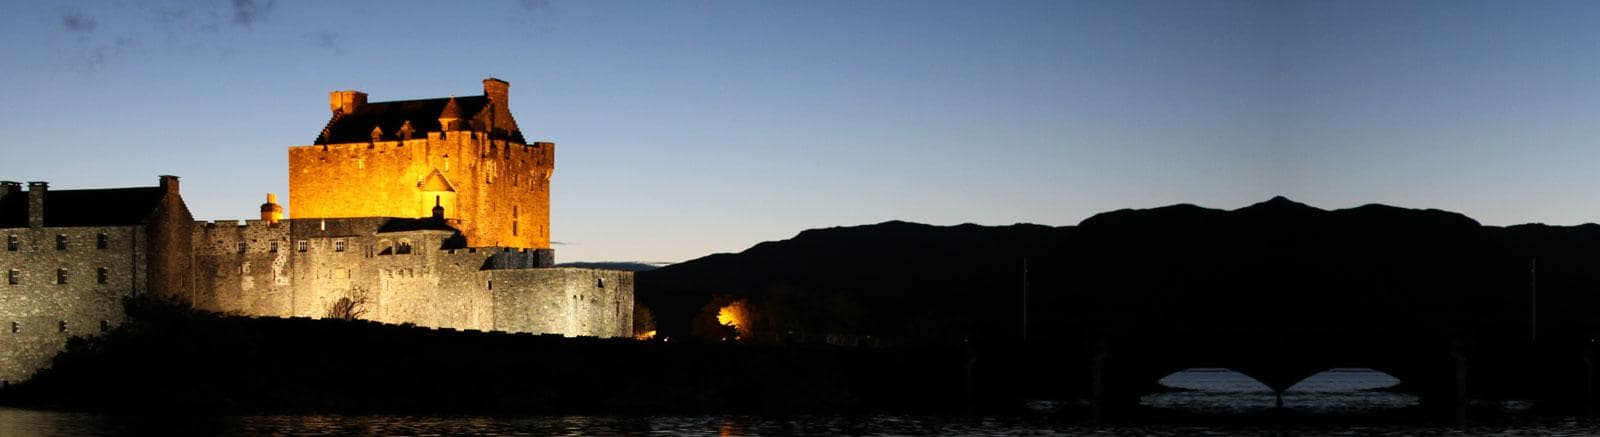 Scottish Castles At Night - Scottish Tourer